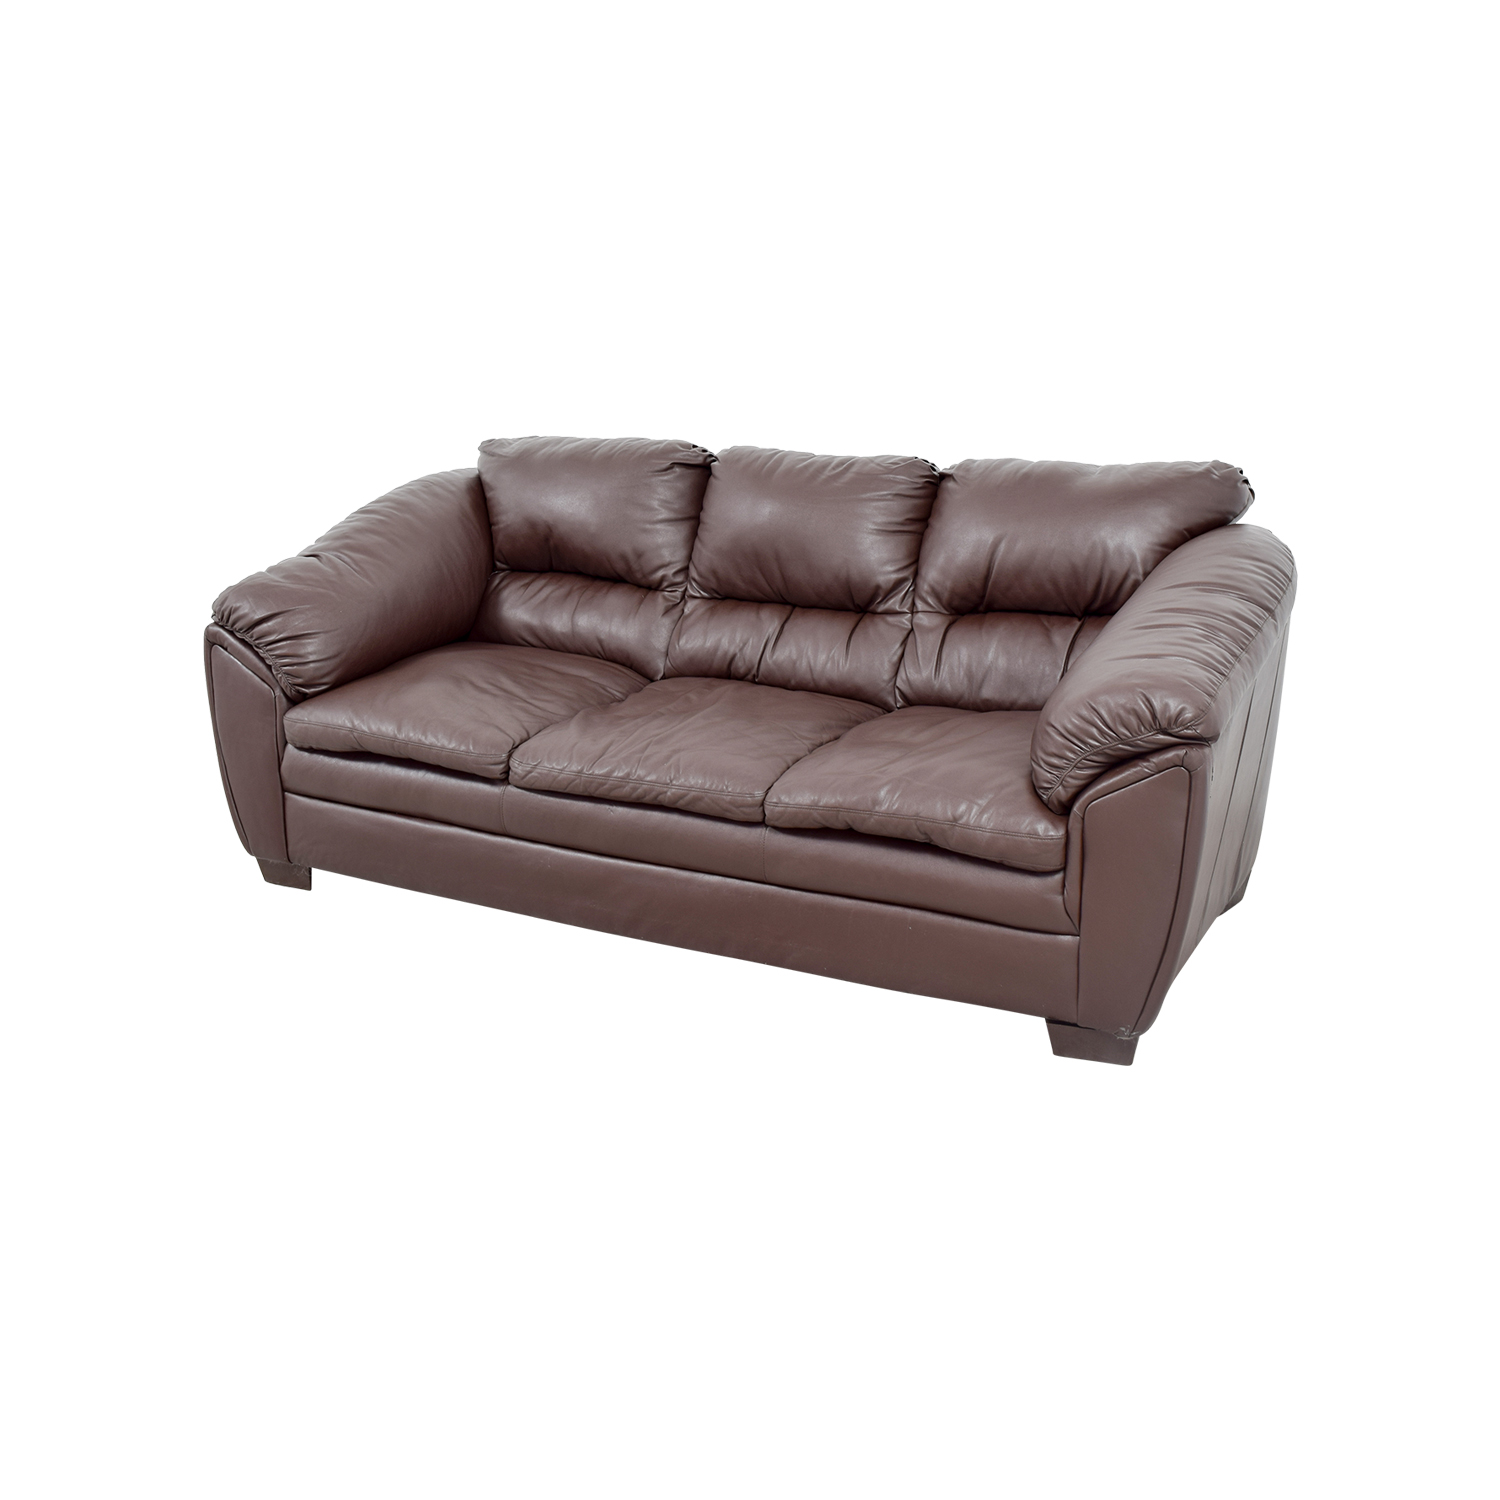 Sofa S 68% Off - Brown Leather Sofa / Sofas